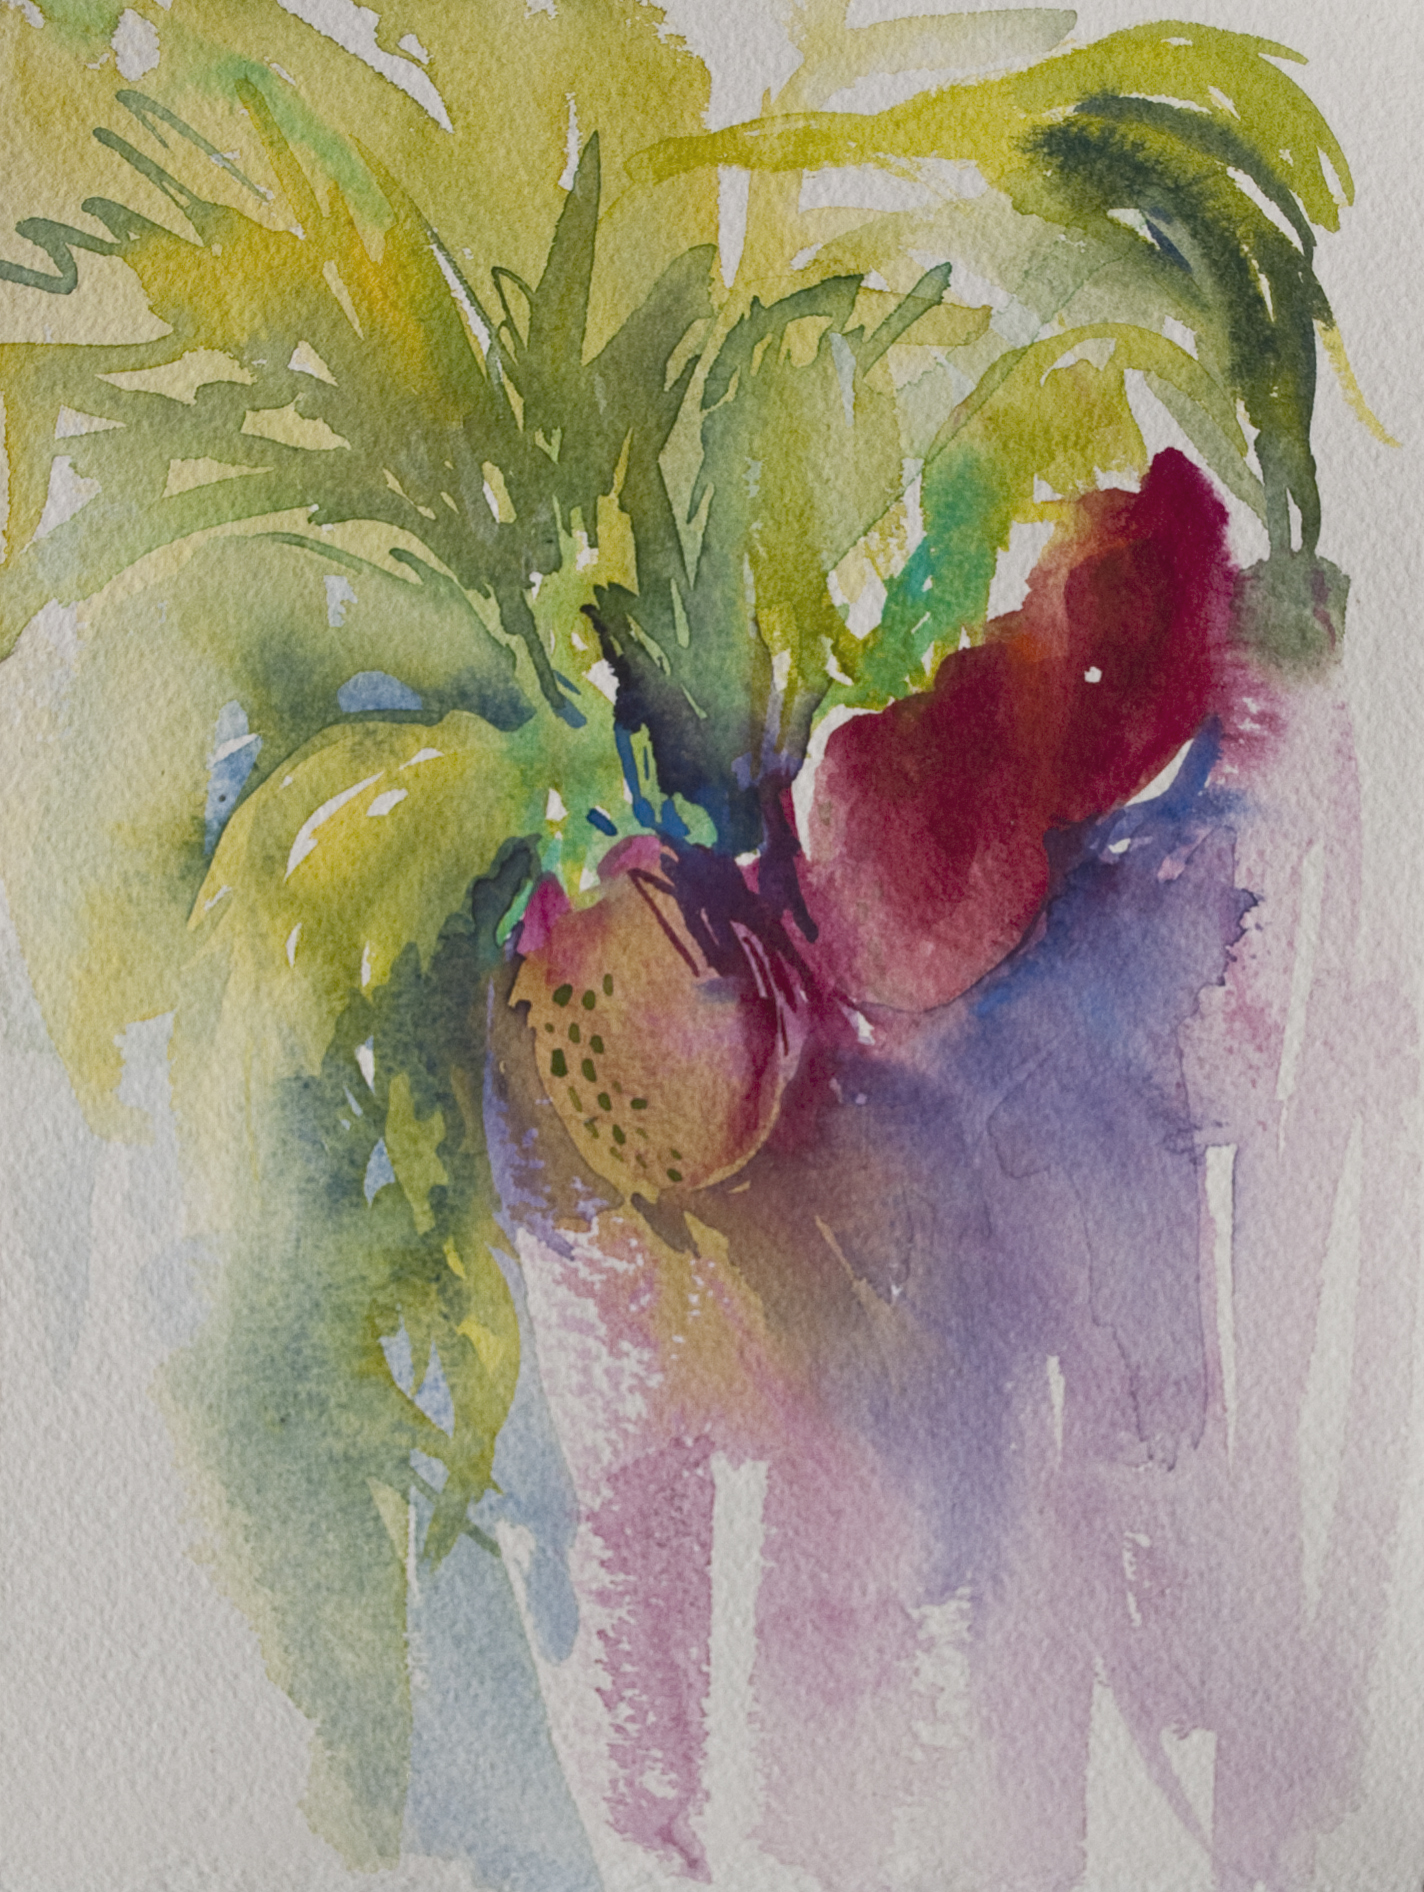 strawberry sketch | Angela Fehr watercolours https://angelafehr.com